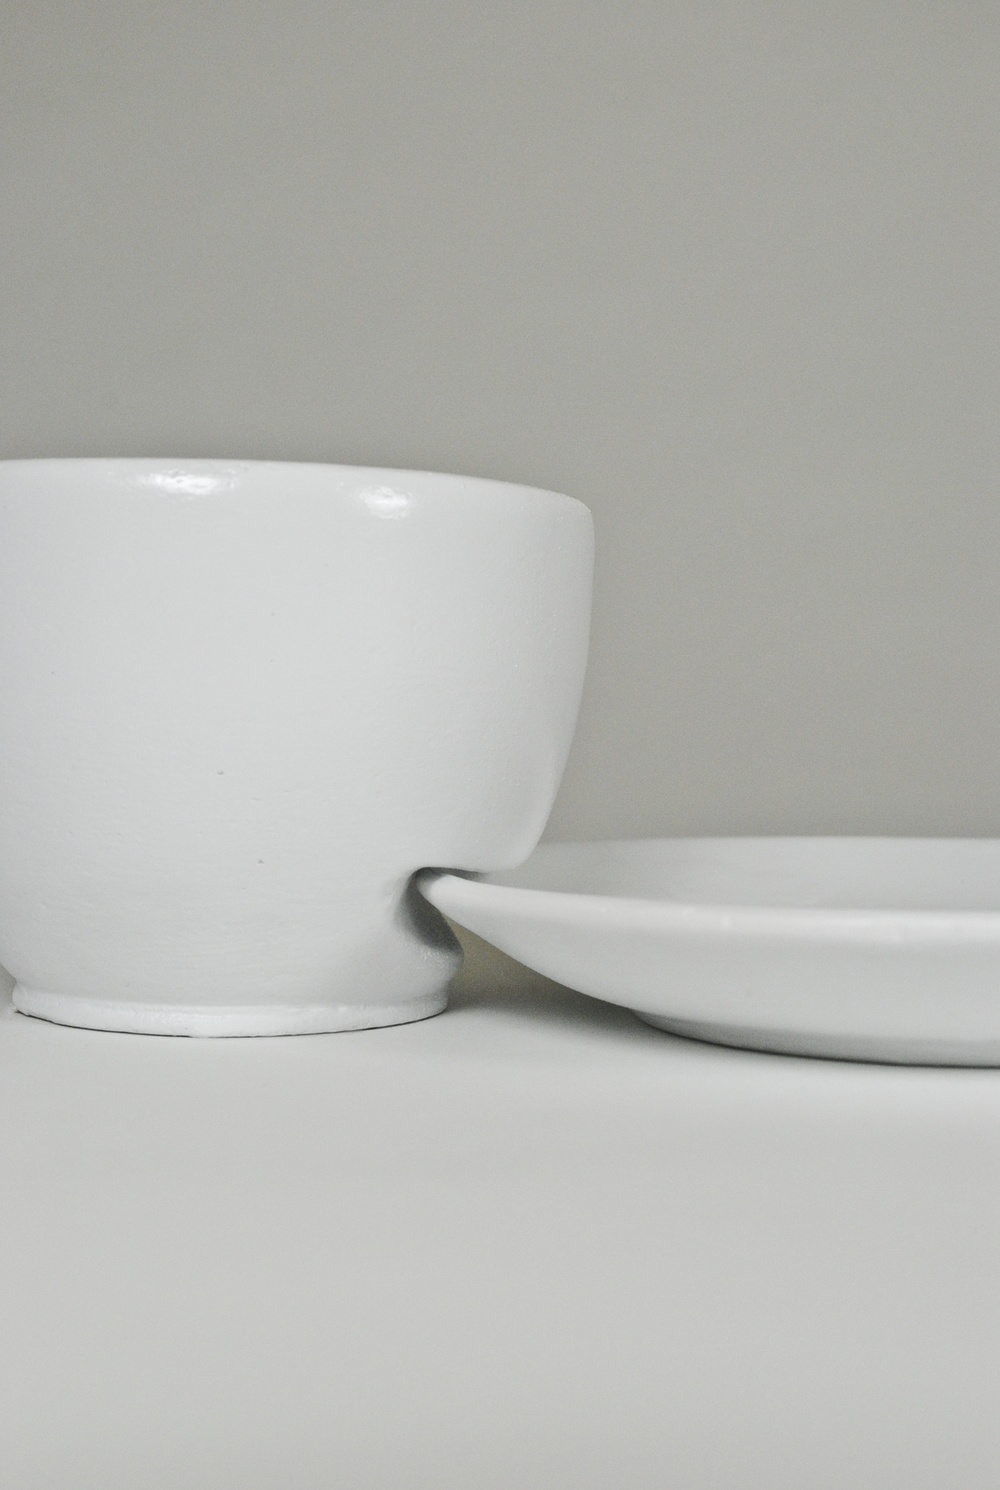 The bowl received the same treatment as the plates.